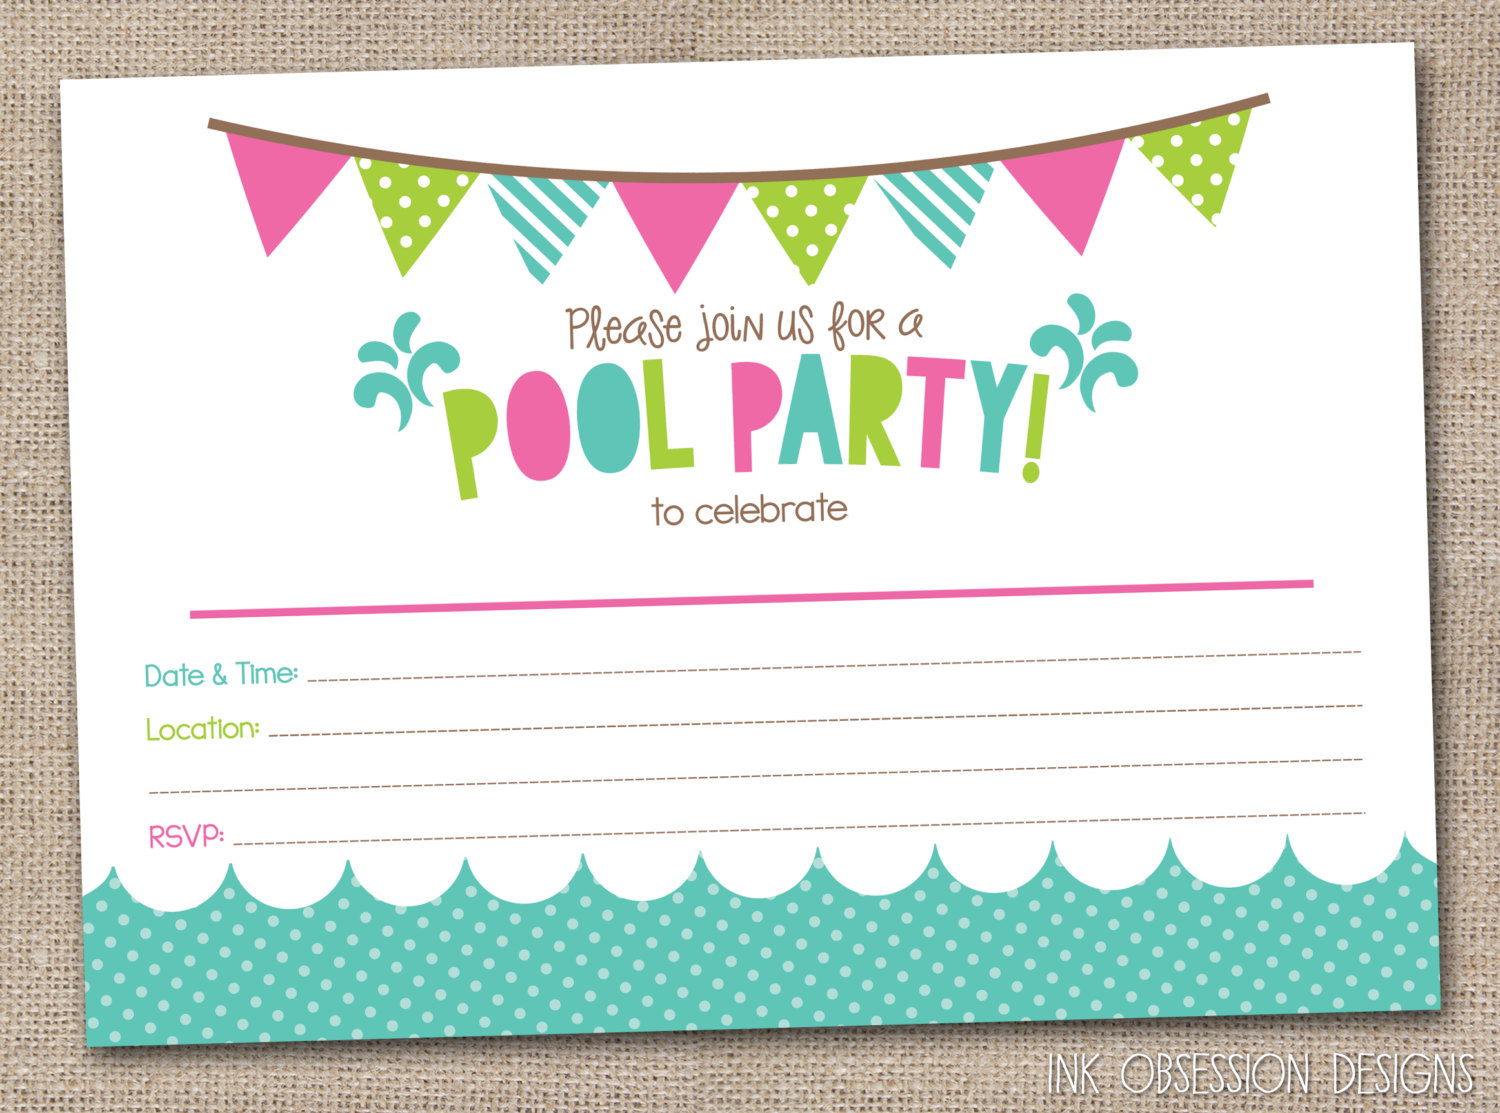 birthday party invitation card template free ; free-printable-birthday-pool-party-invitations-templates-luxurious-and-splendid-blank-pool-party-invitations-girls-printable-invitation-fill-by